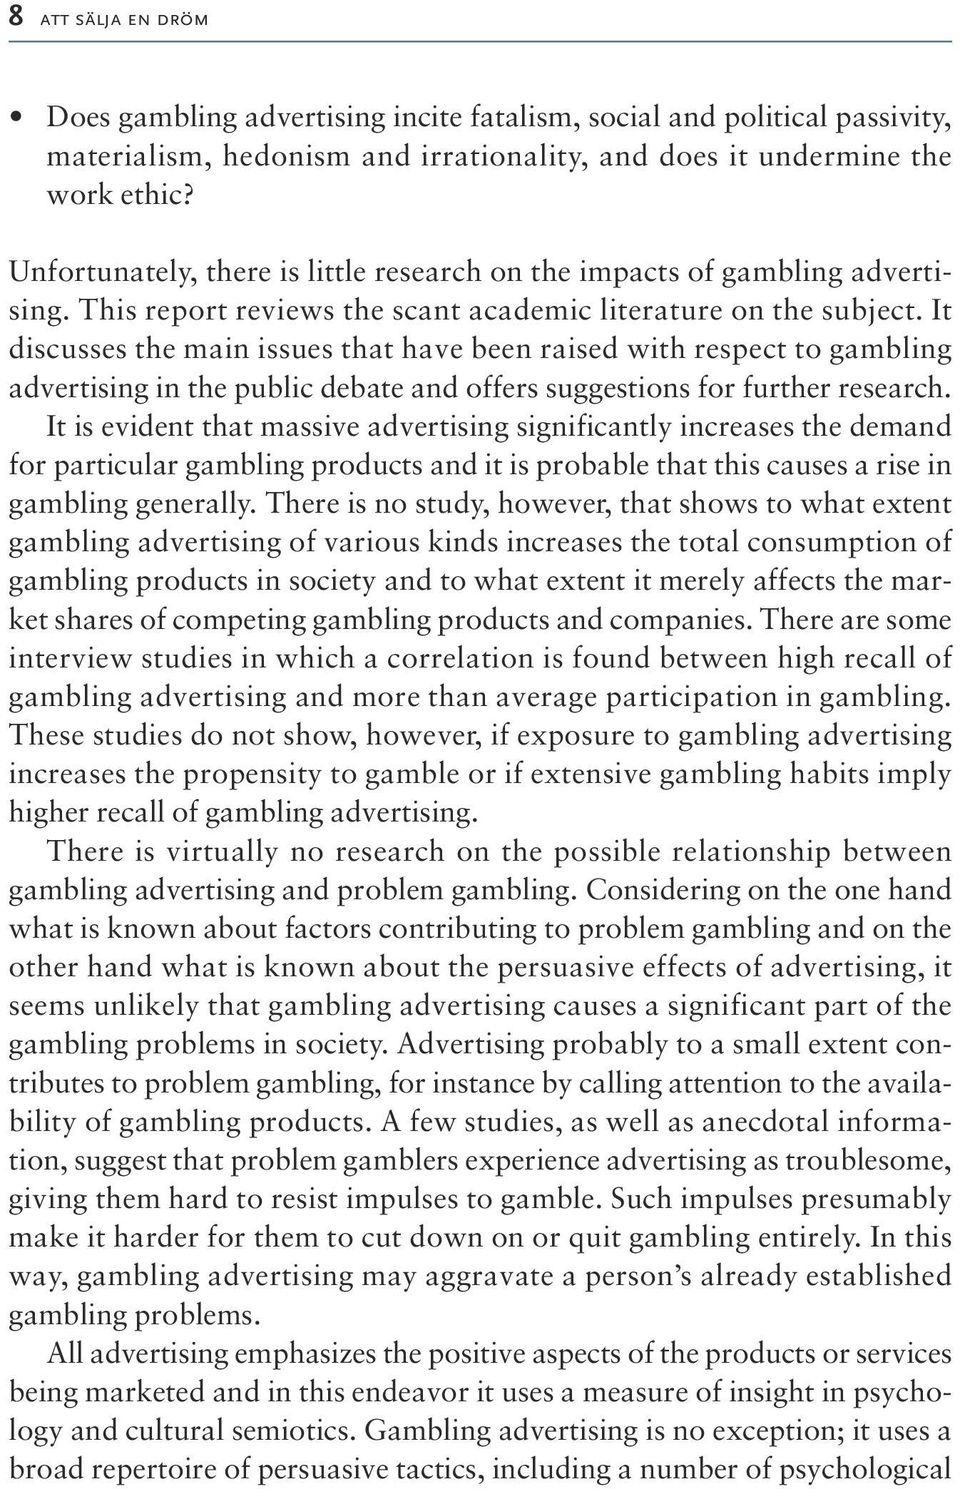 It discusses the main issues that have been raised with respect to gambling advertising in the public debate and offers suggestions for further research.